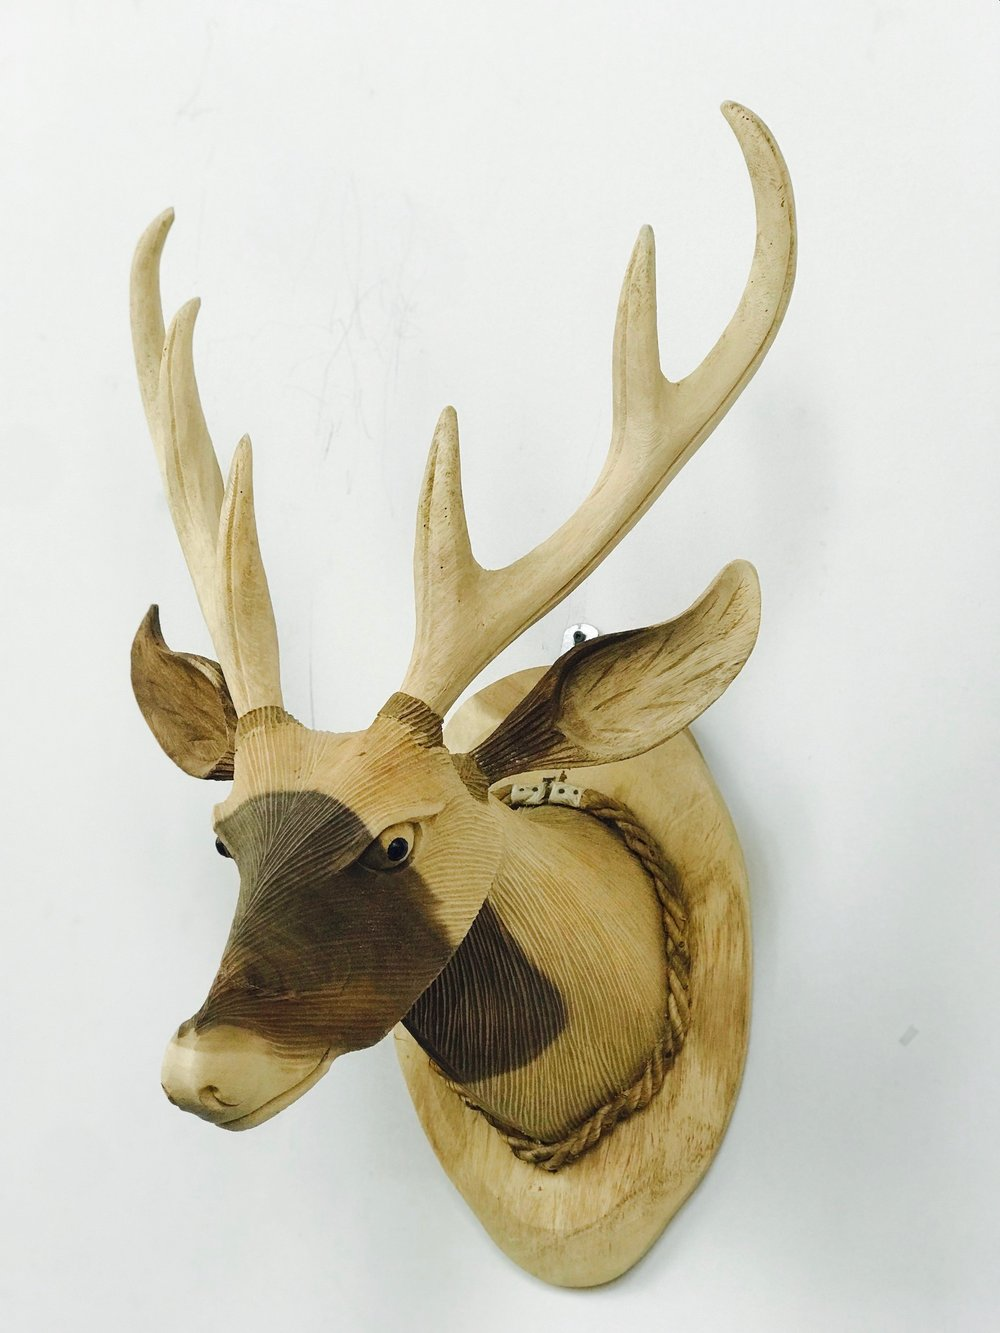 Rose wood deer head sculpture. blue moon furniture store in winnipeg.jpg